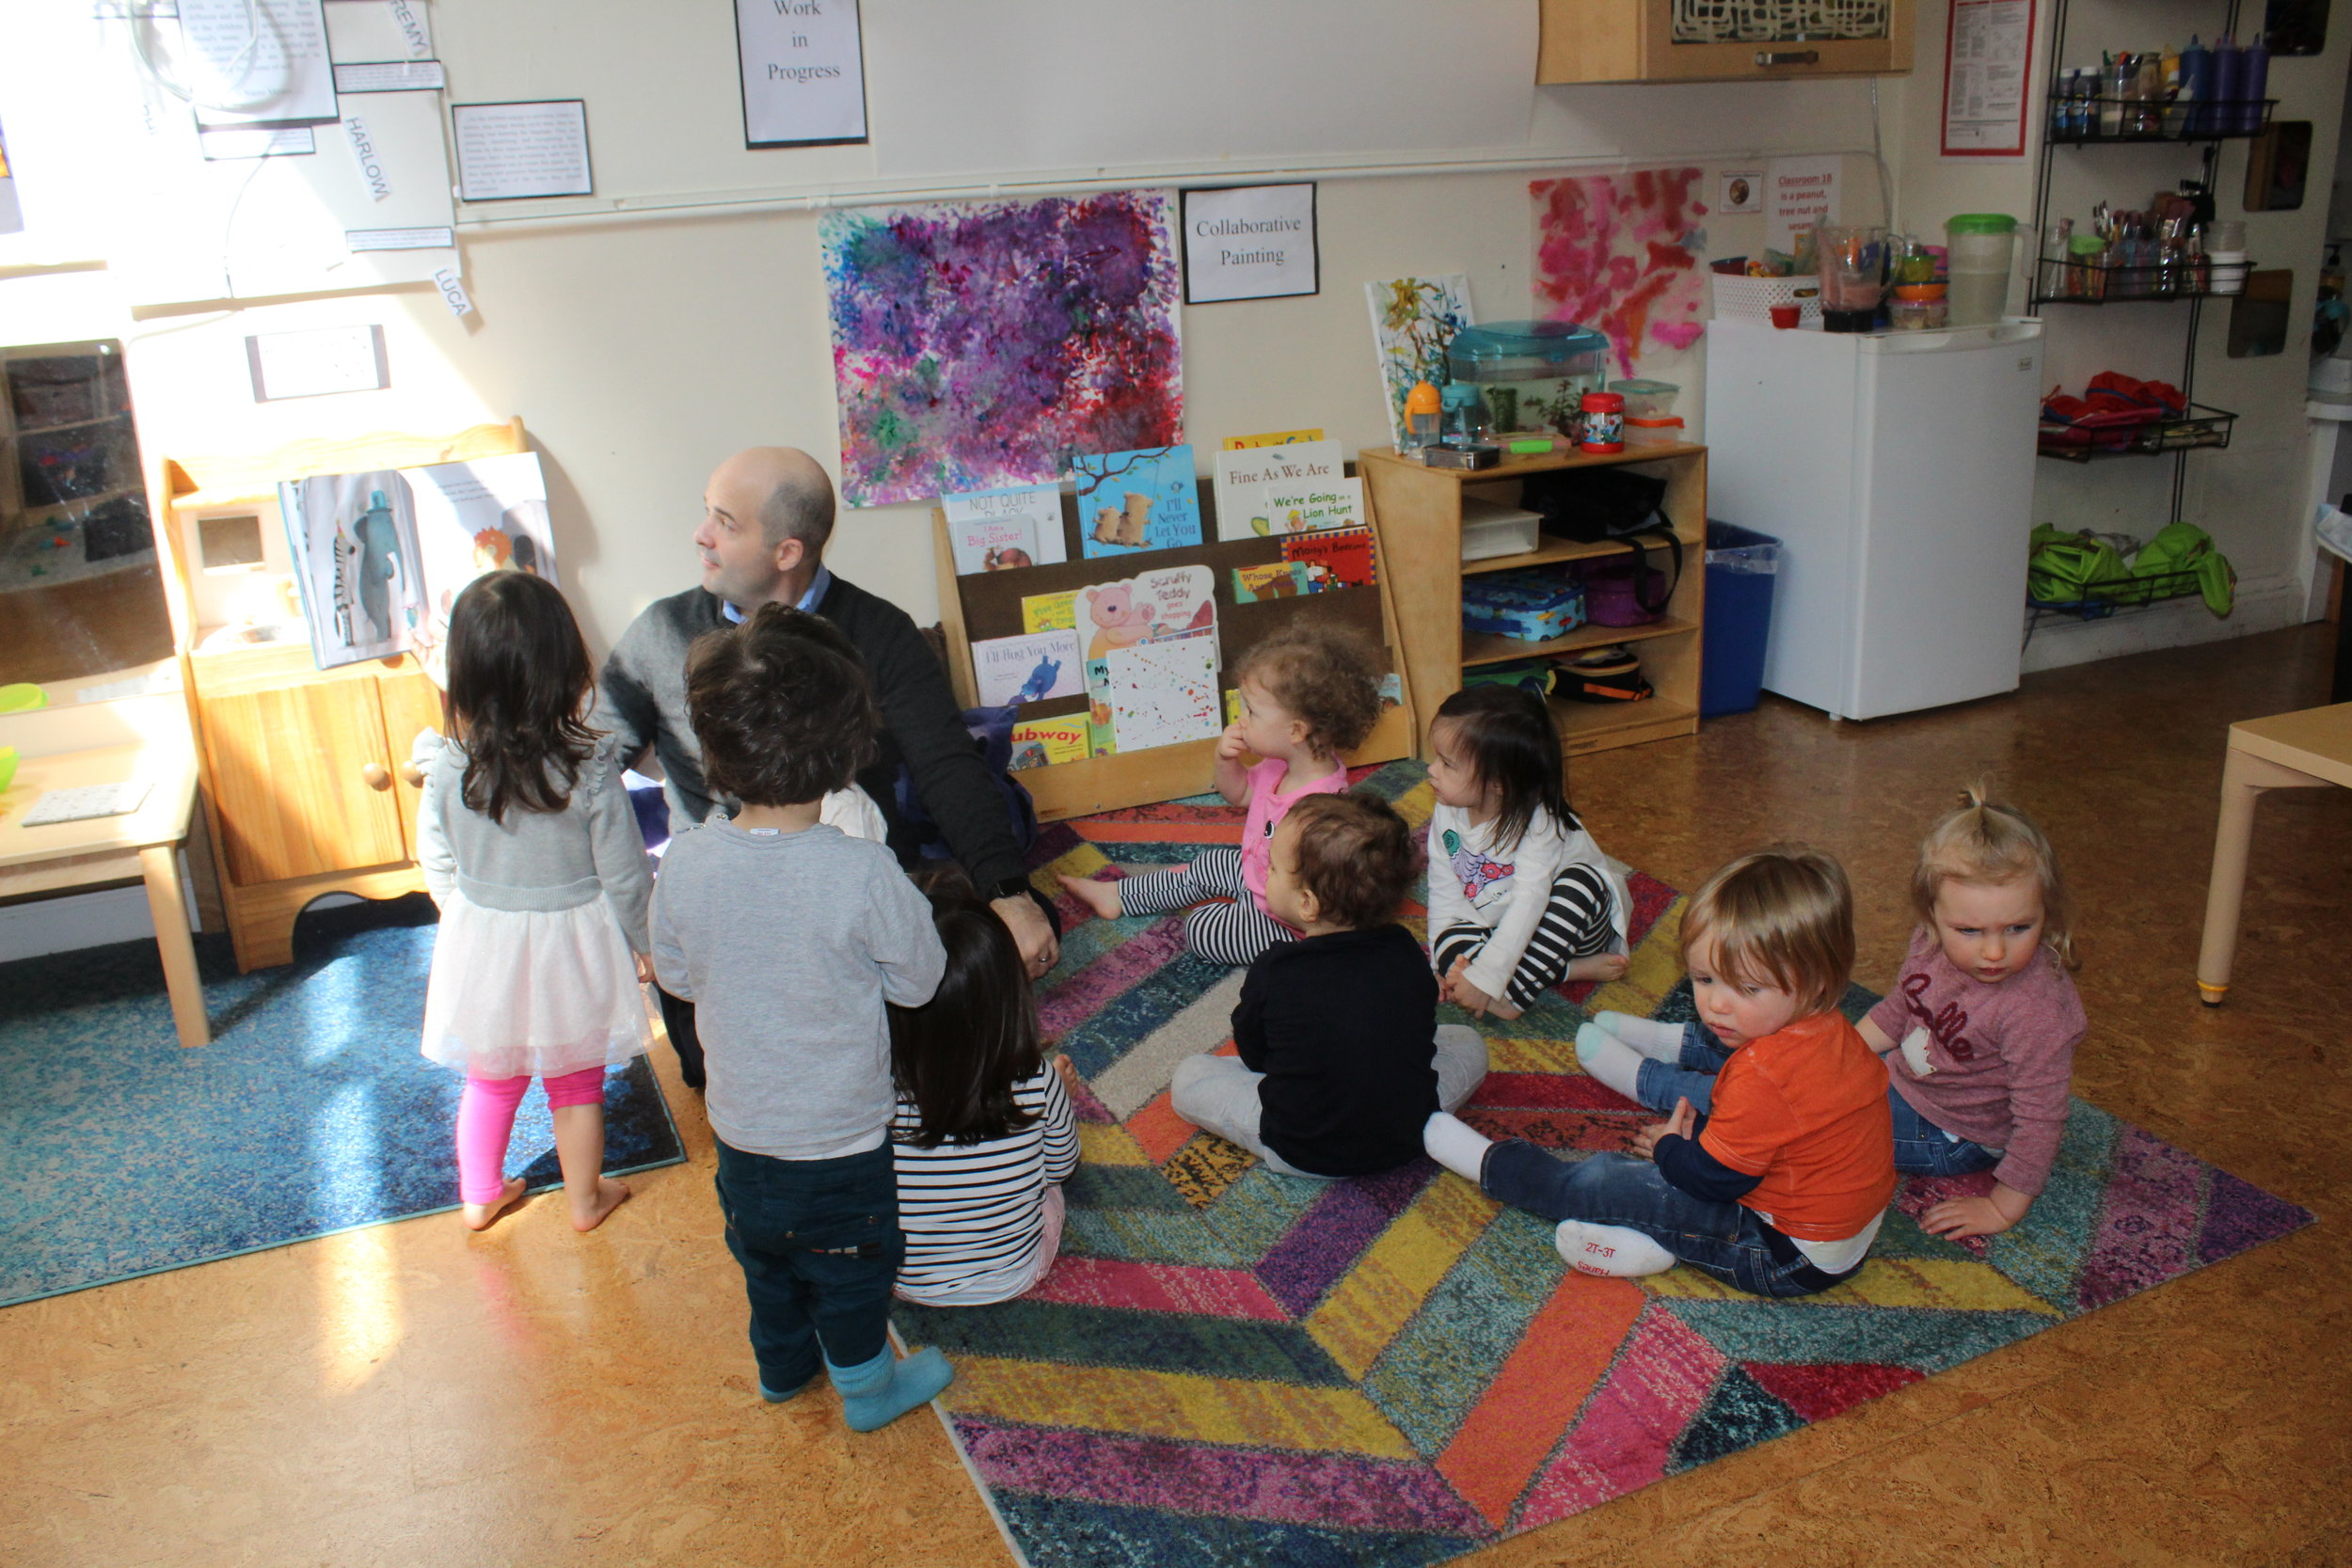 Arturo, Mario's father came to read to the children after lunch. The children were excited to see and hear him read.